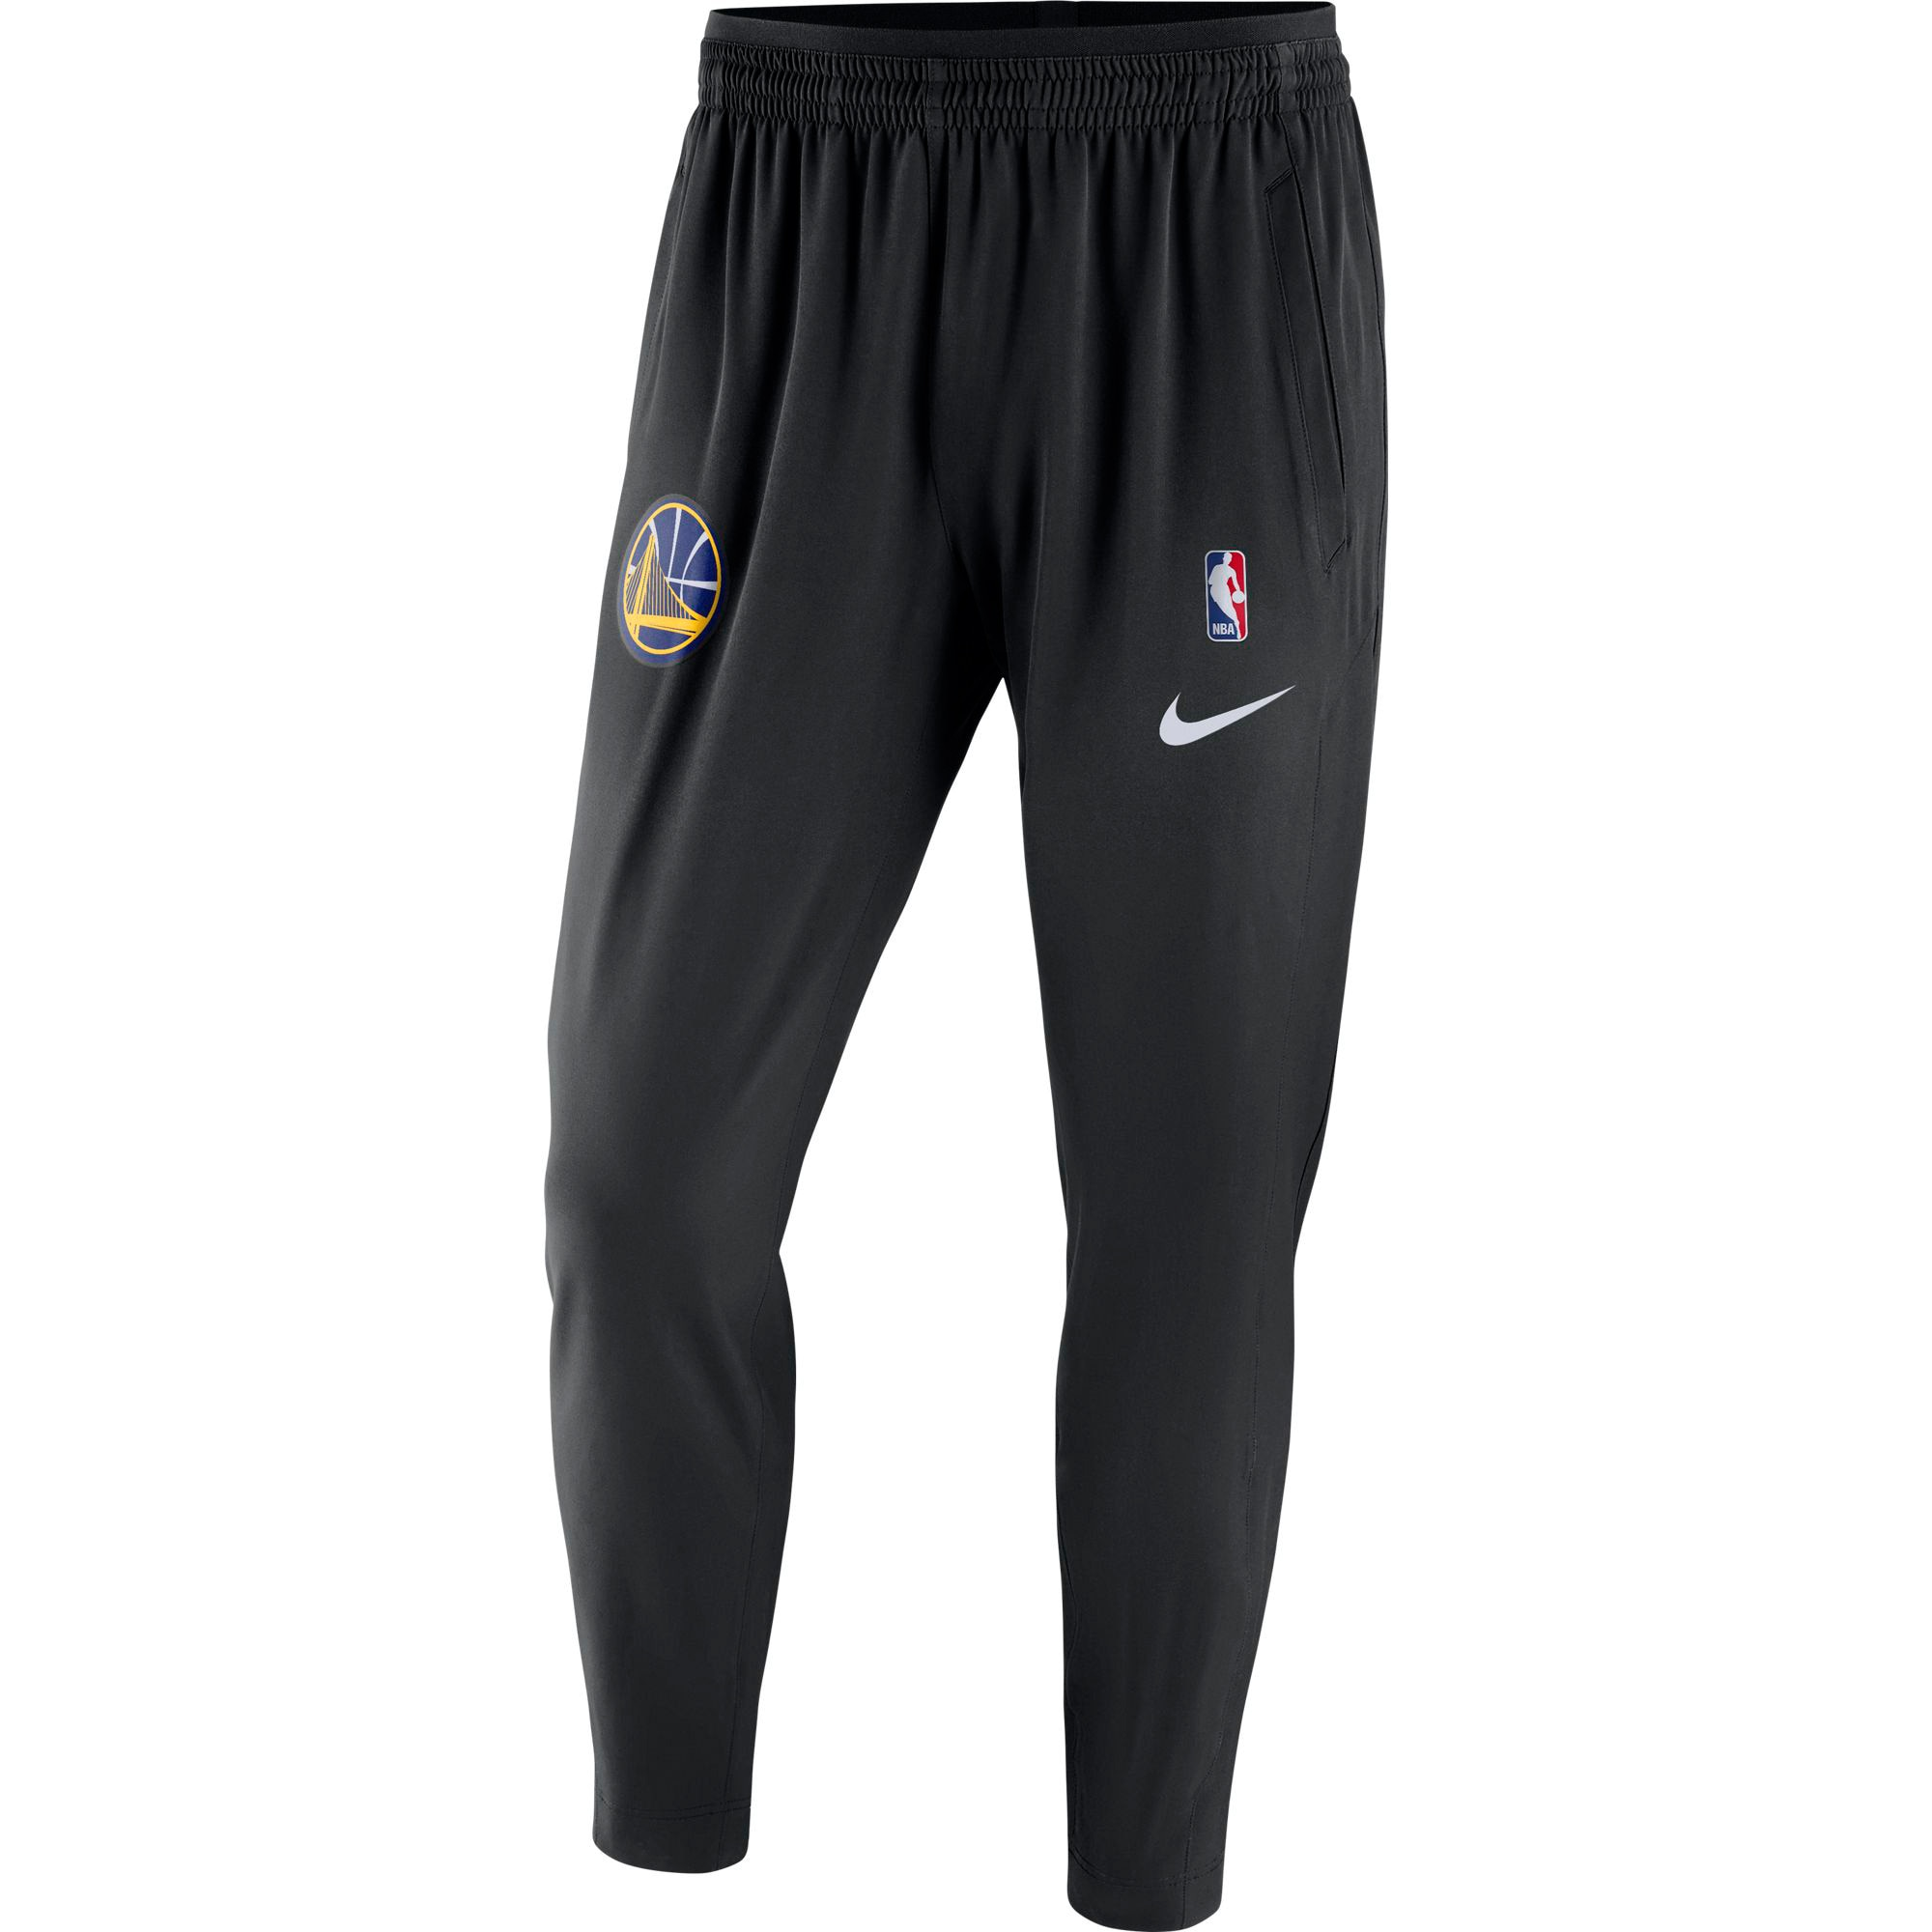 Golden State Warriors Nike Showtime Performance Pants - Black